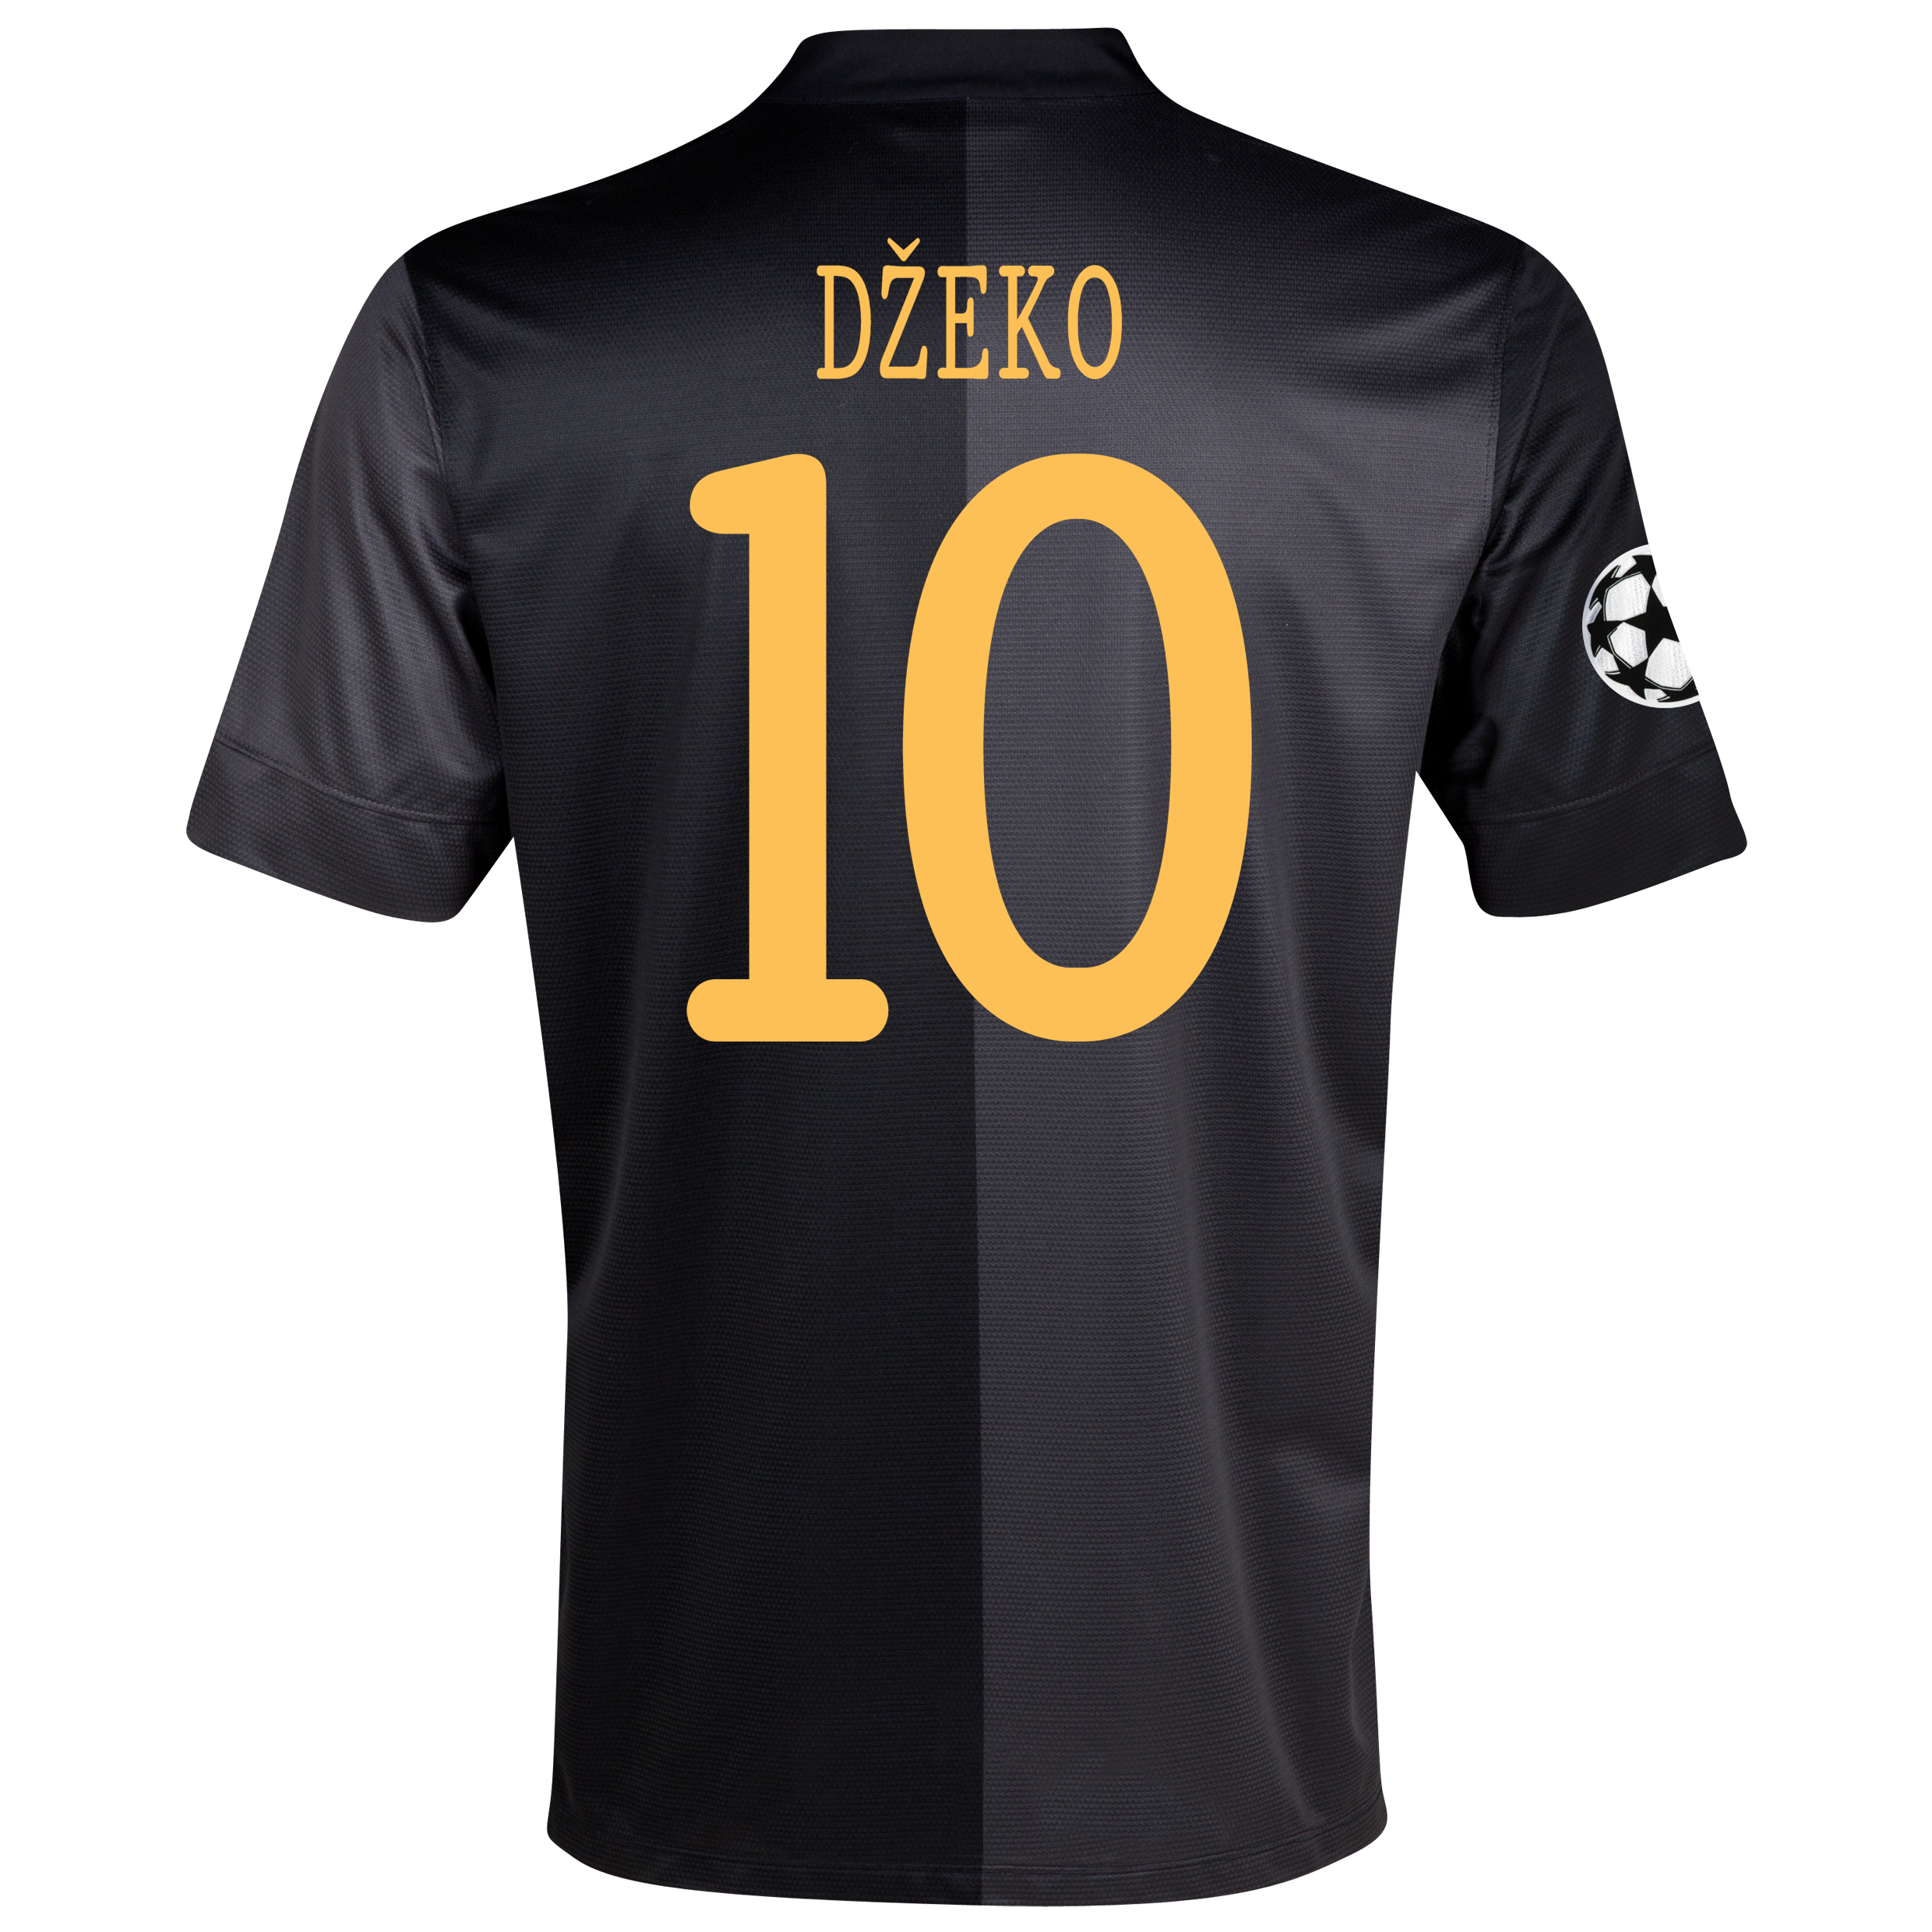 Manchester City UEFA Champions League Away Shirt 2013/14 with Dzeko 10 printing